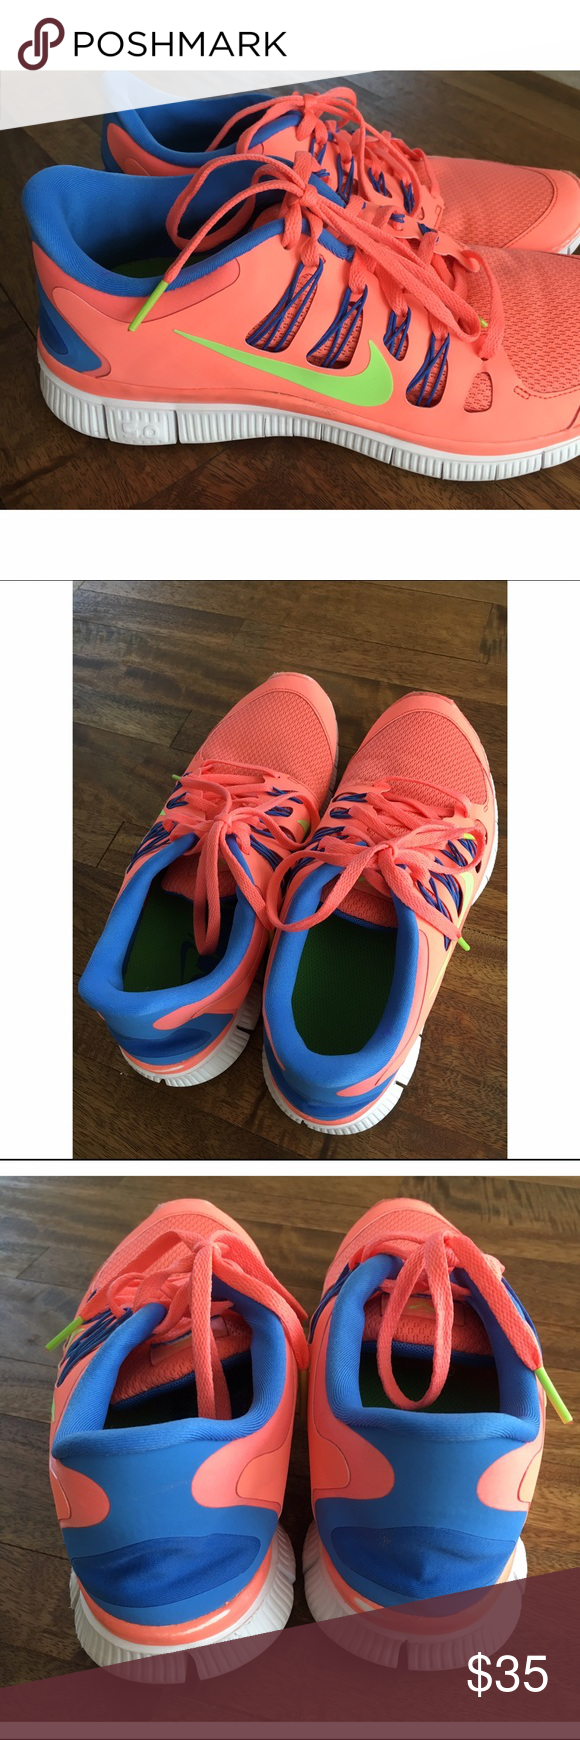 f39c627d7bcd9 Nike competitor woman s running shoes size 10 Nike running competitor shoes  Women s Size 10 Pre owned